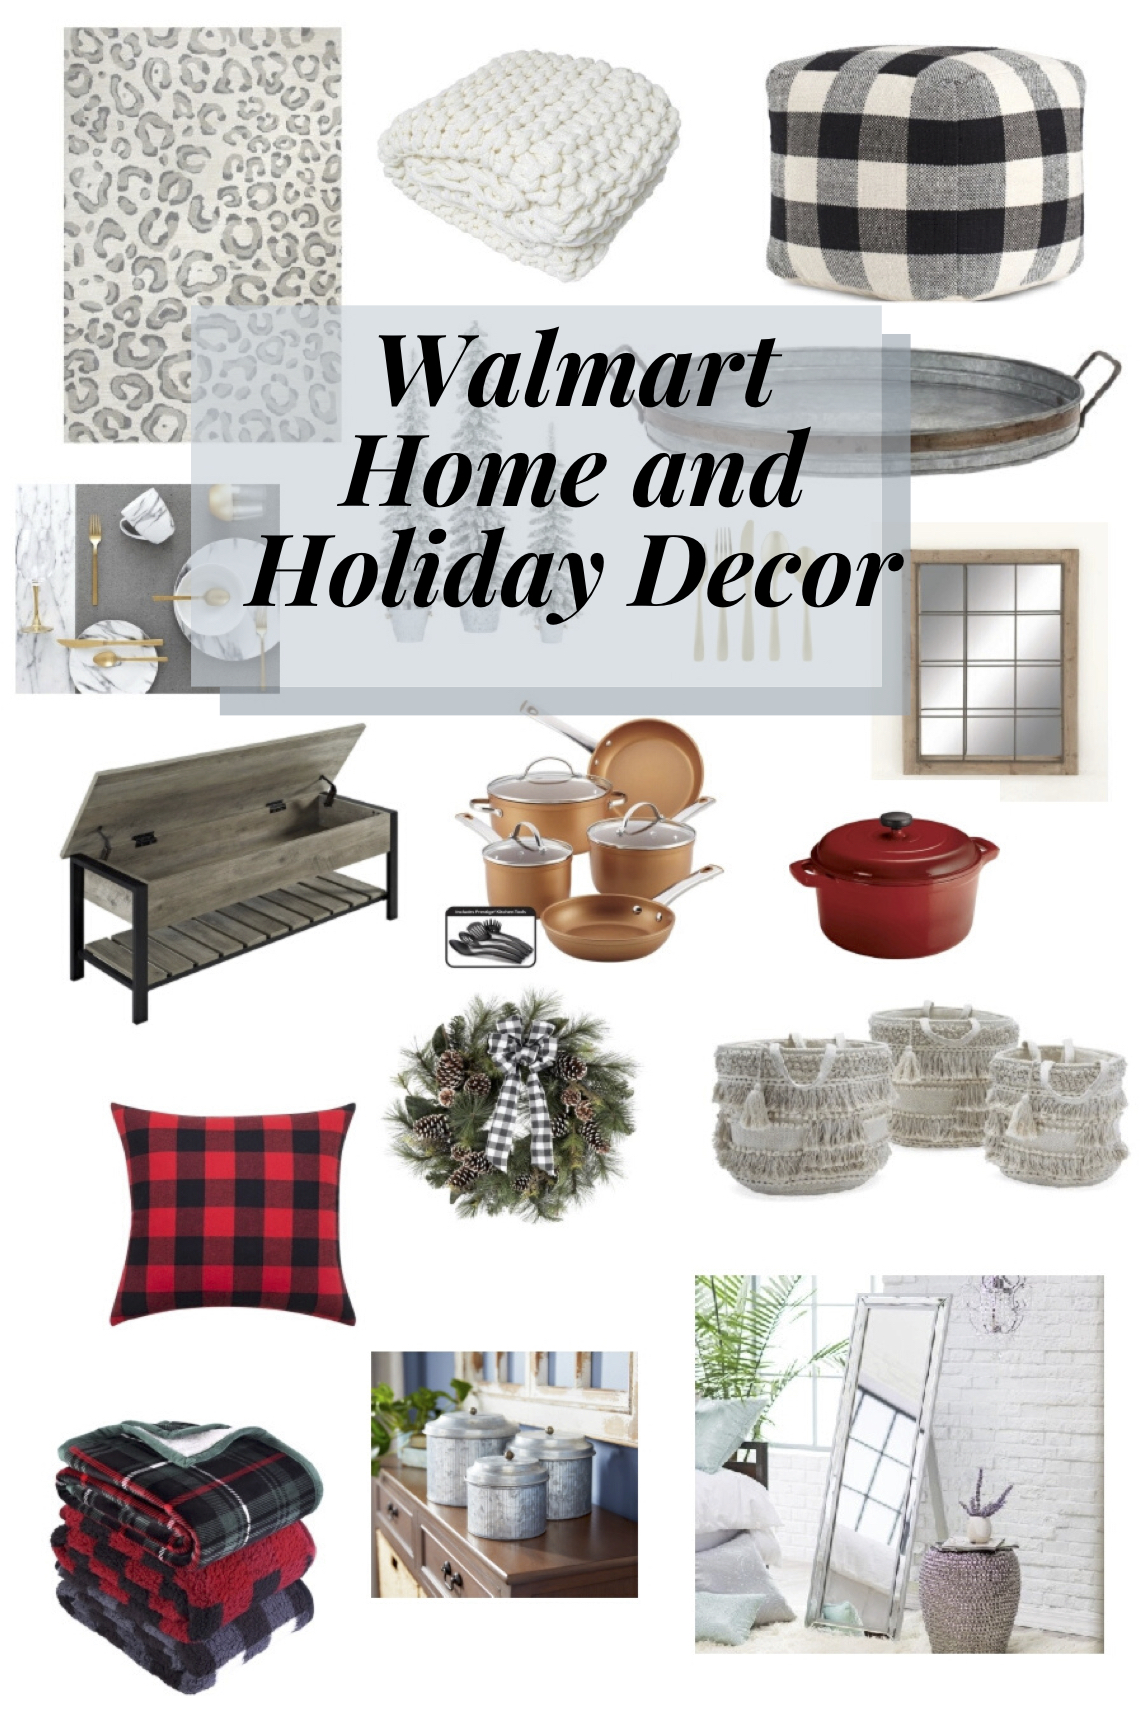 Holiday and home decor from Walmart